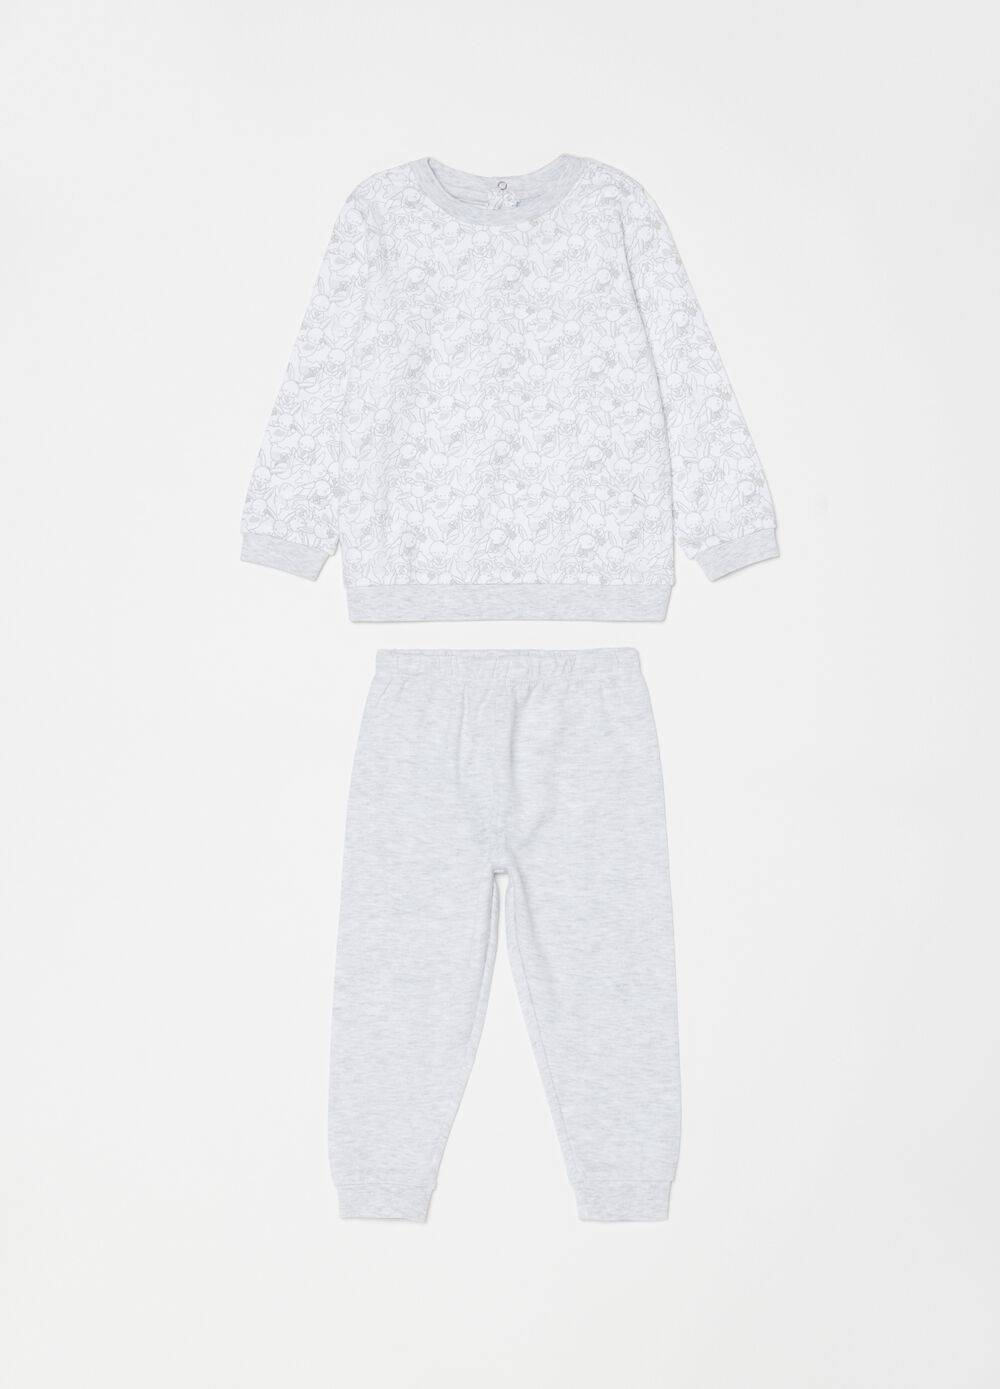 Rabbit pyjamas with top and trousers